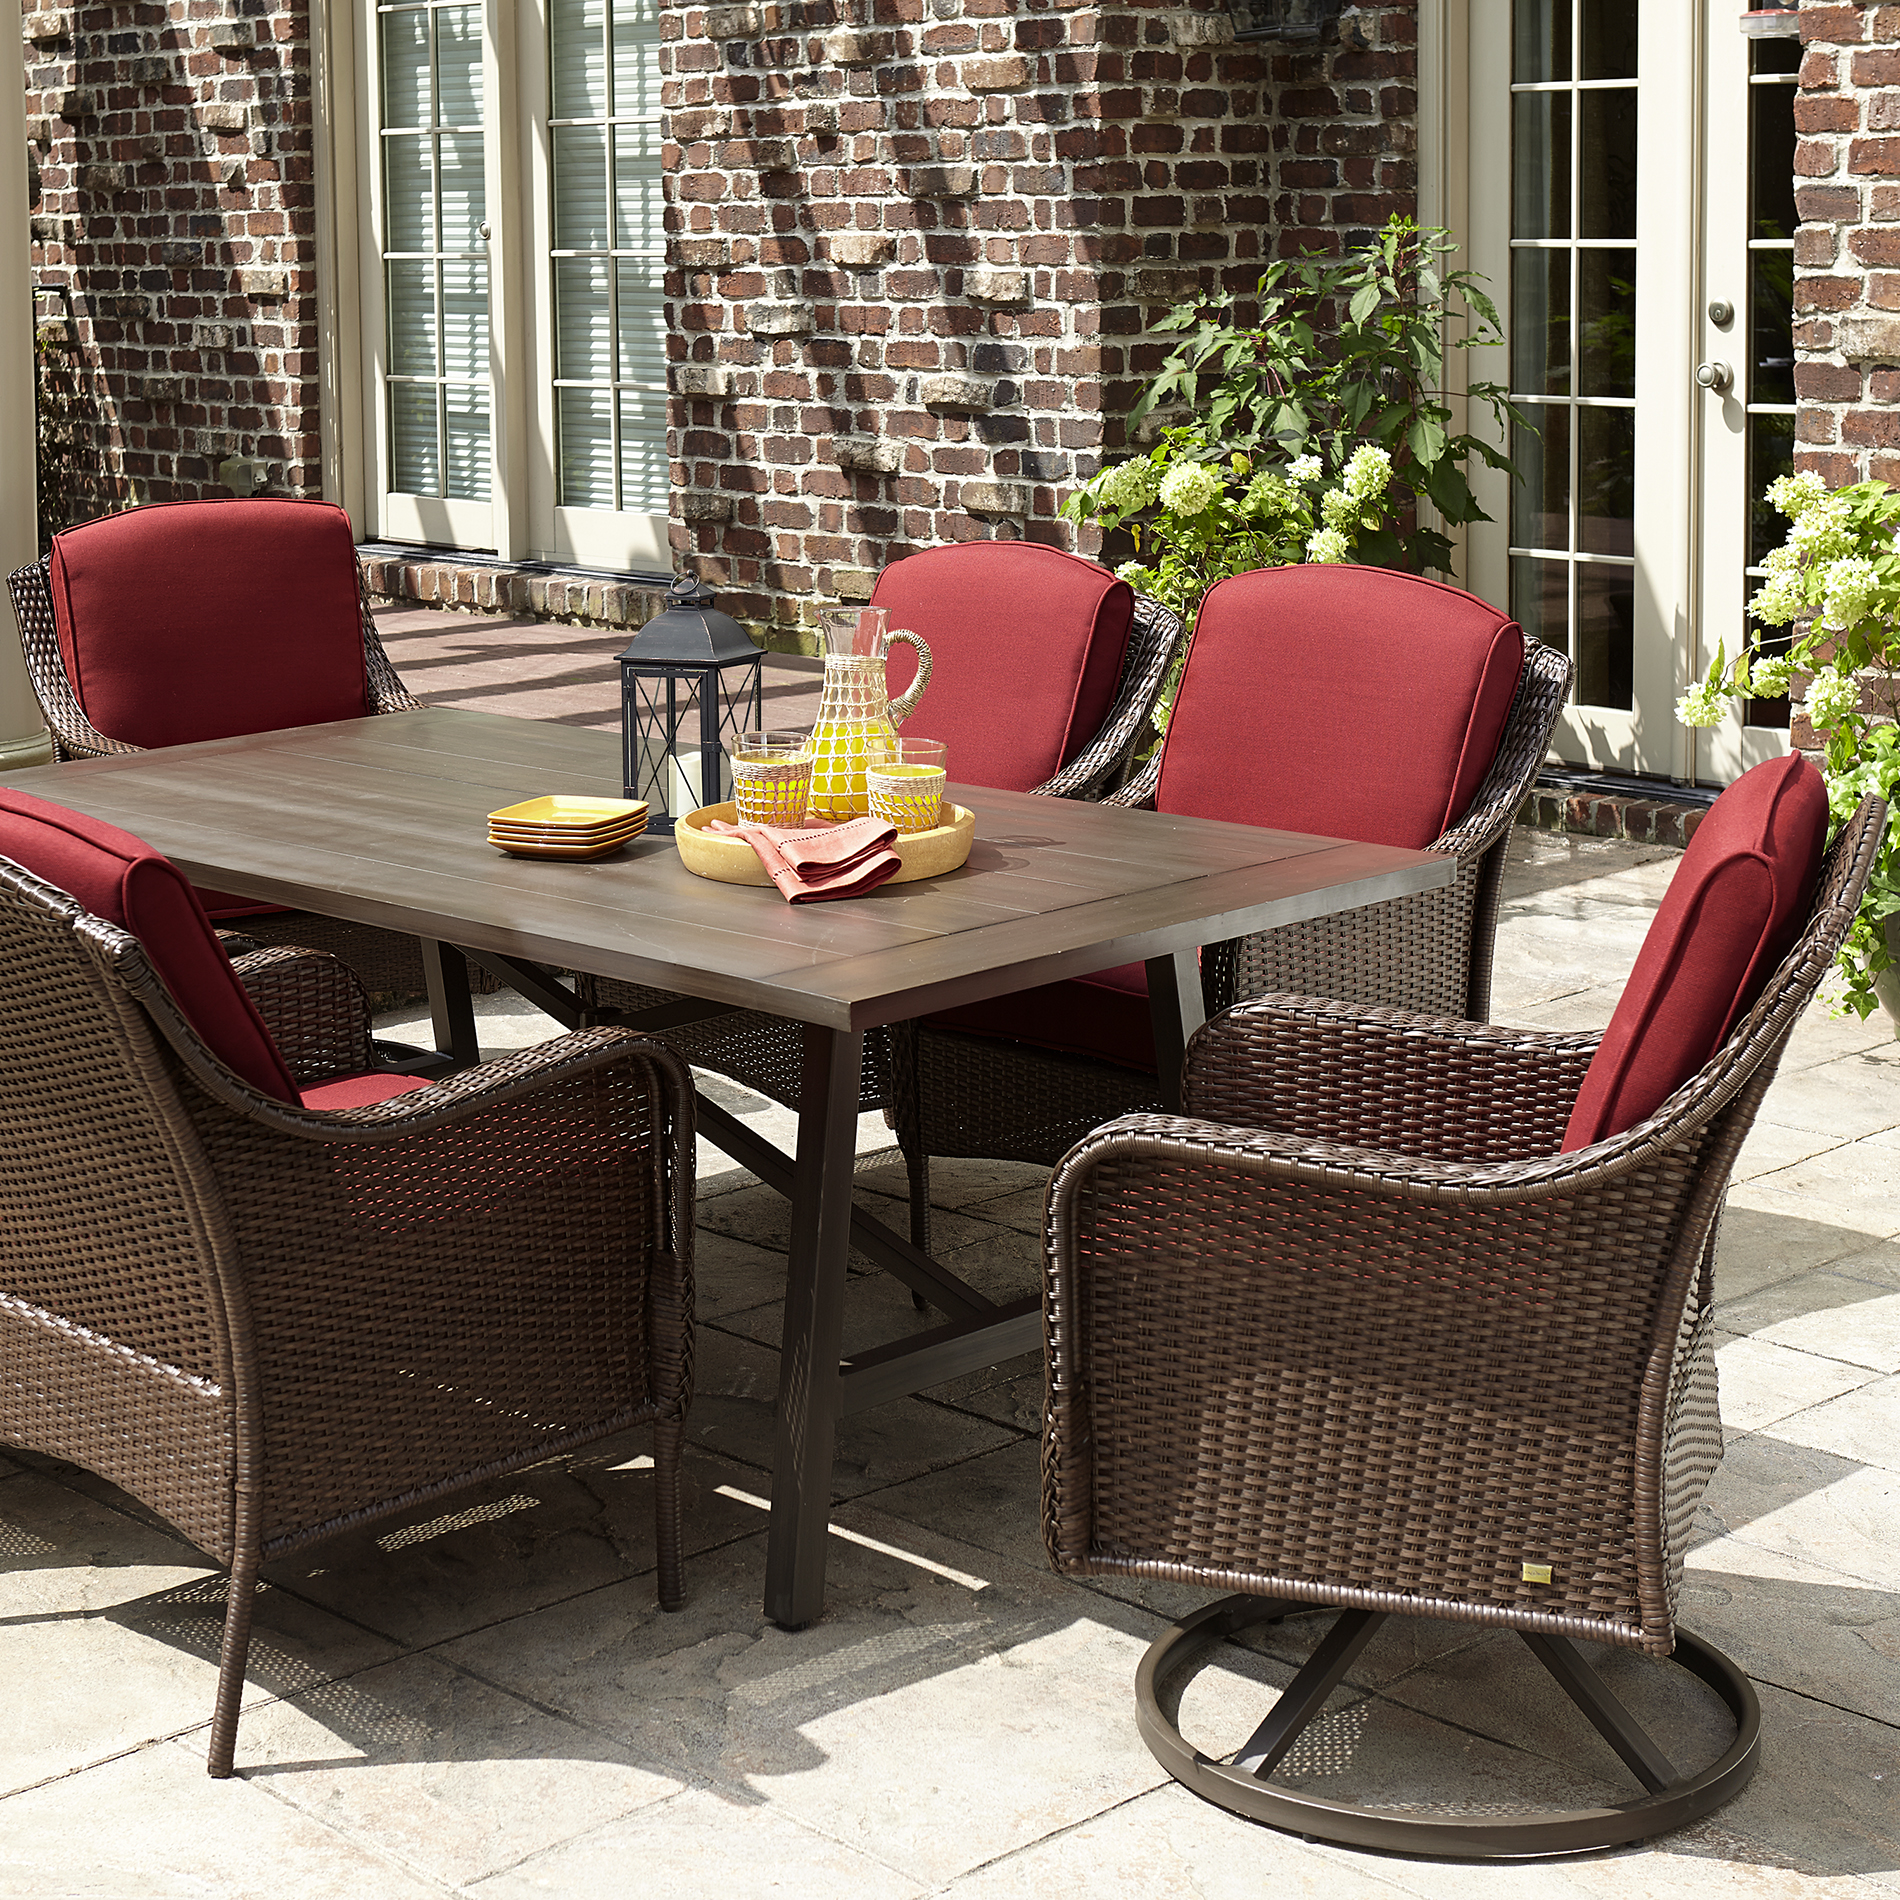 La-boy Madeline 7 Piece Dining Set- Red Limited